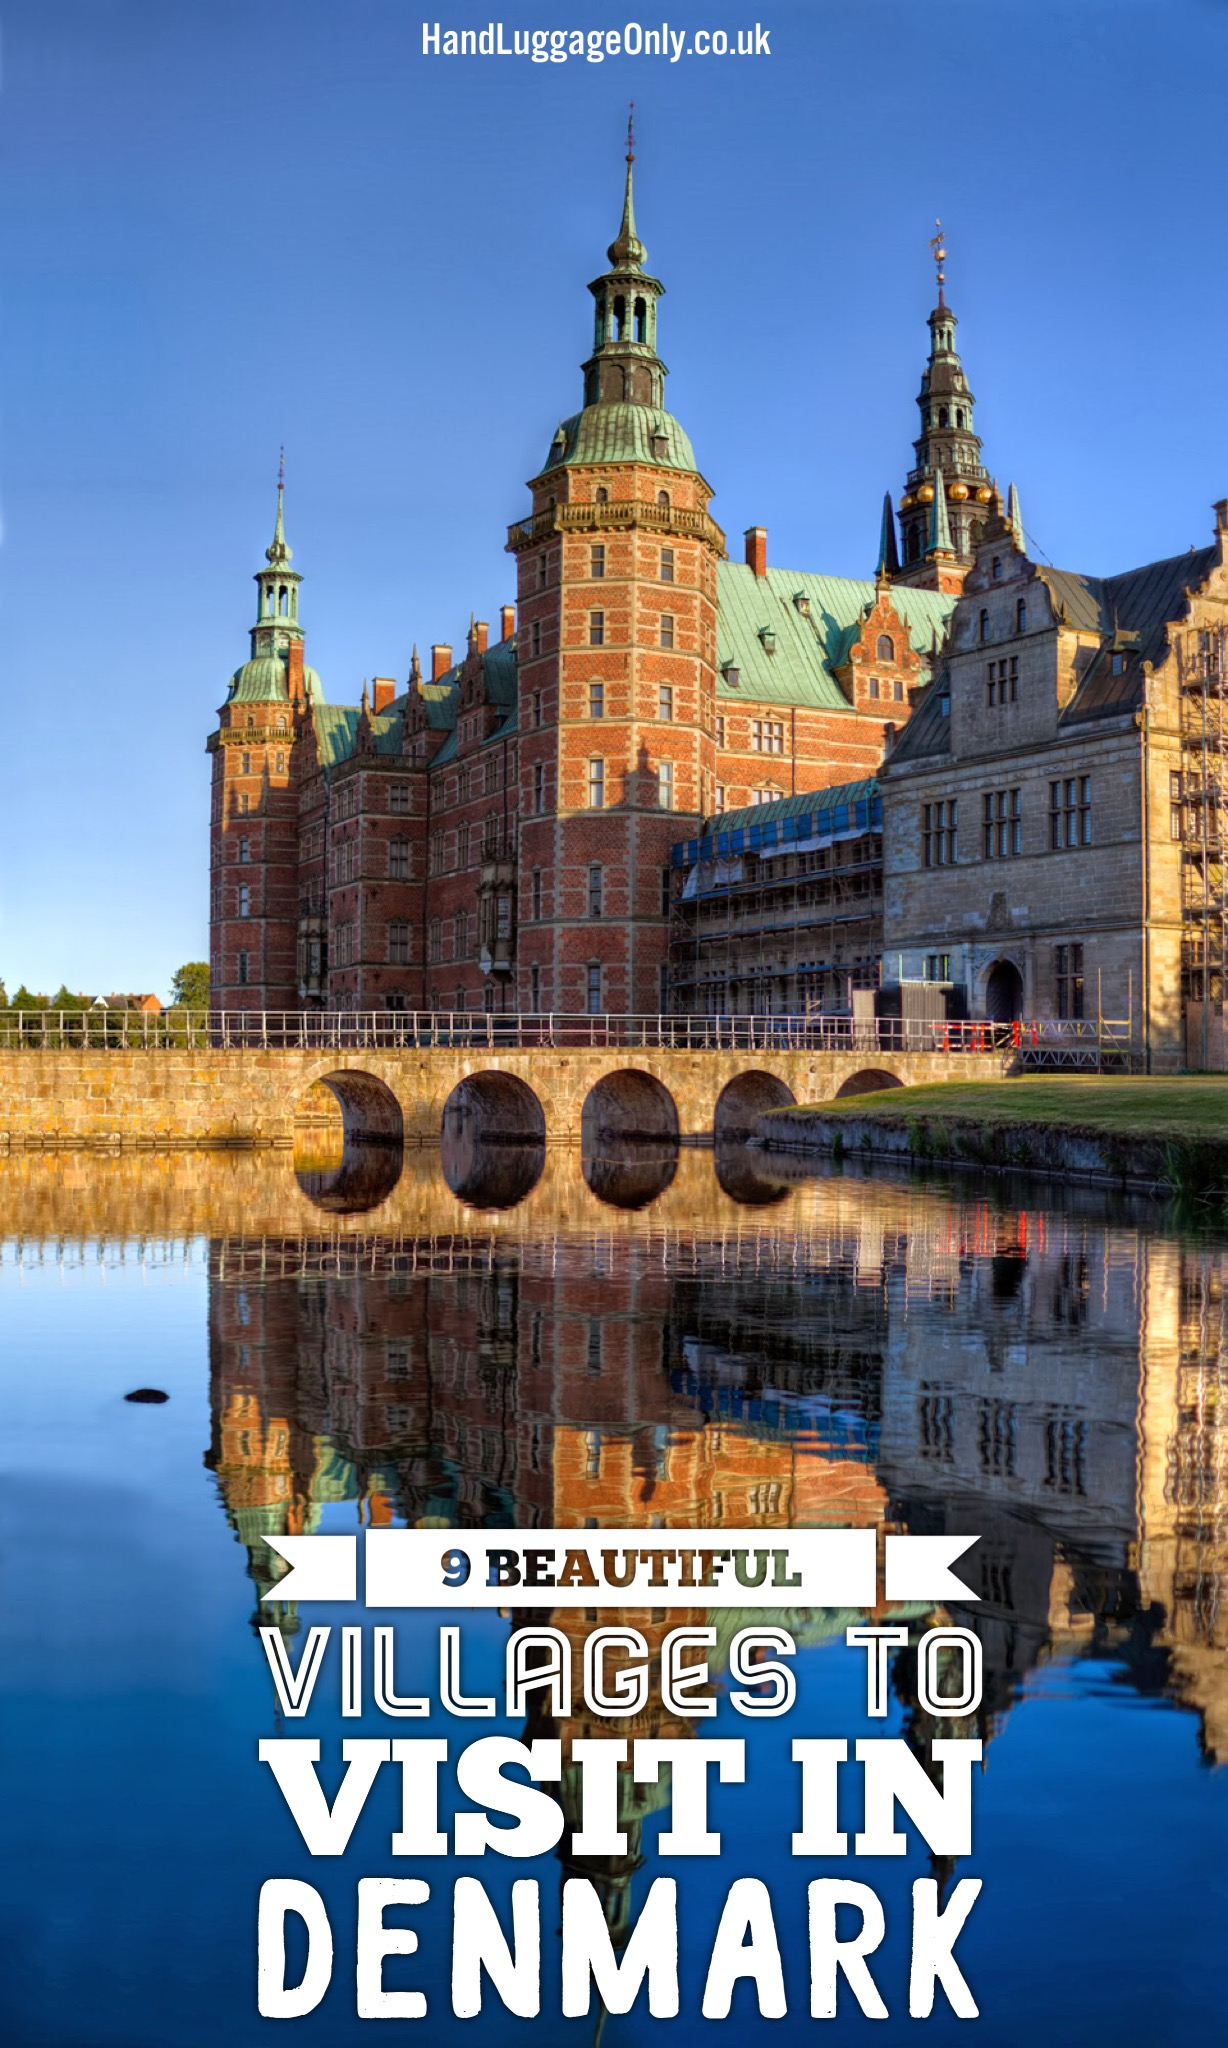 9 Beautiful Villages To Visit in Denmark